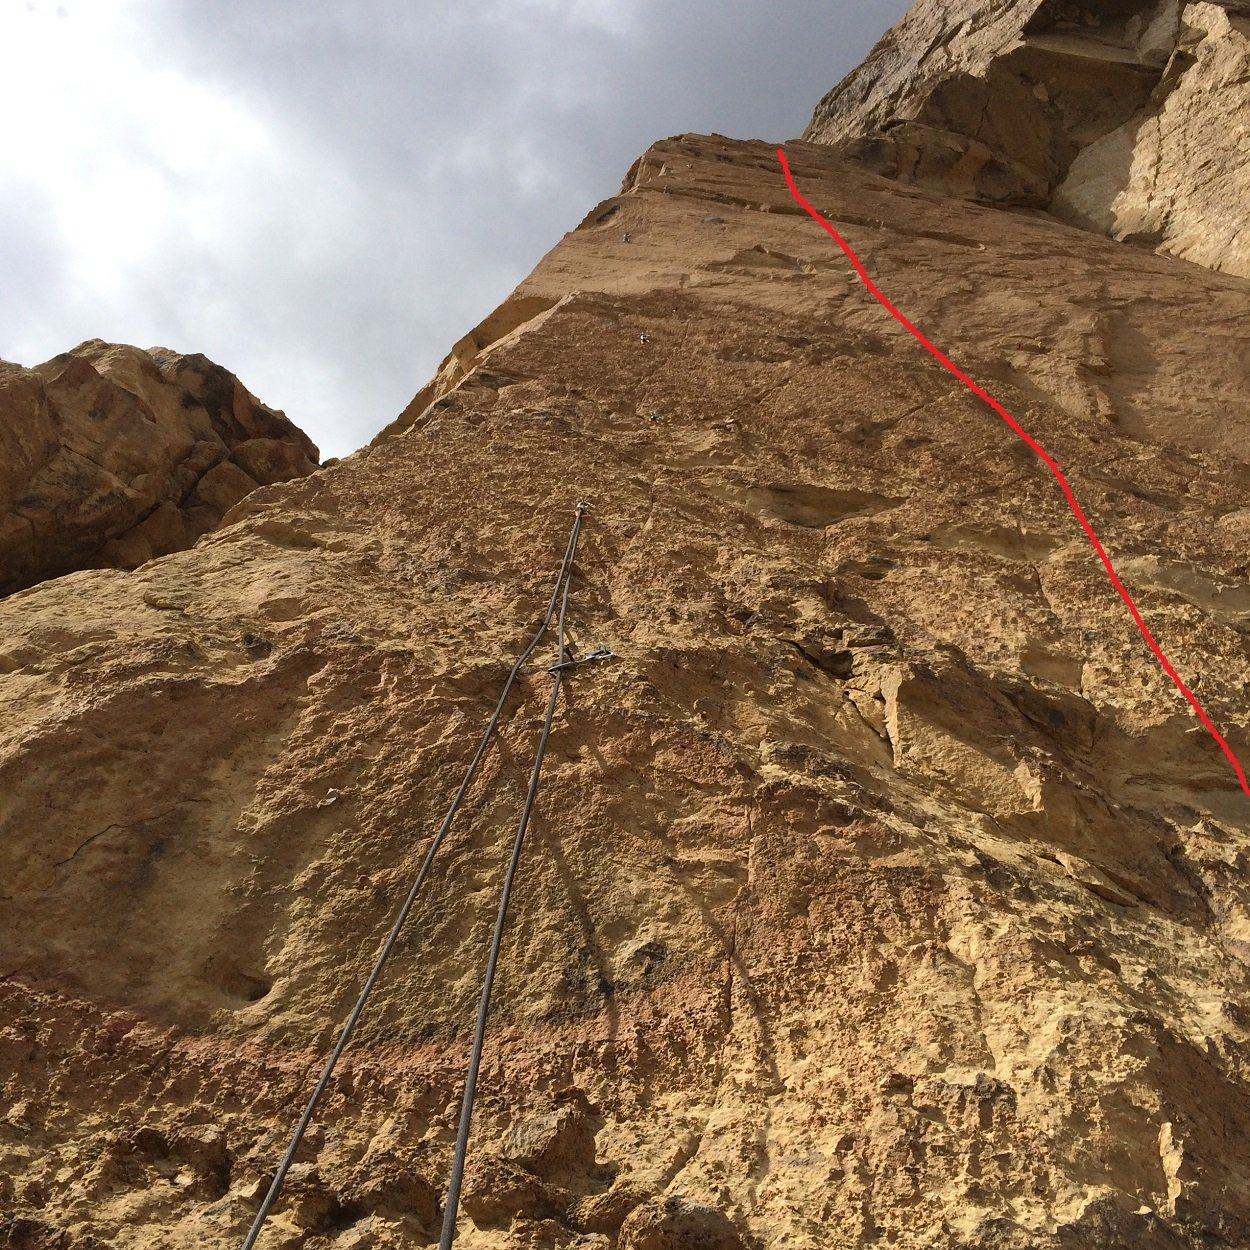 through-being-cool-smith-rock-climbing